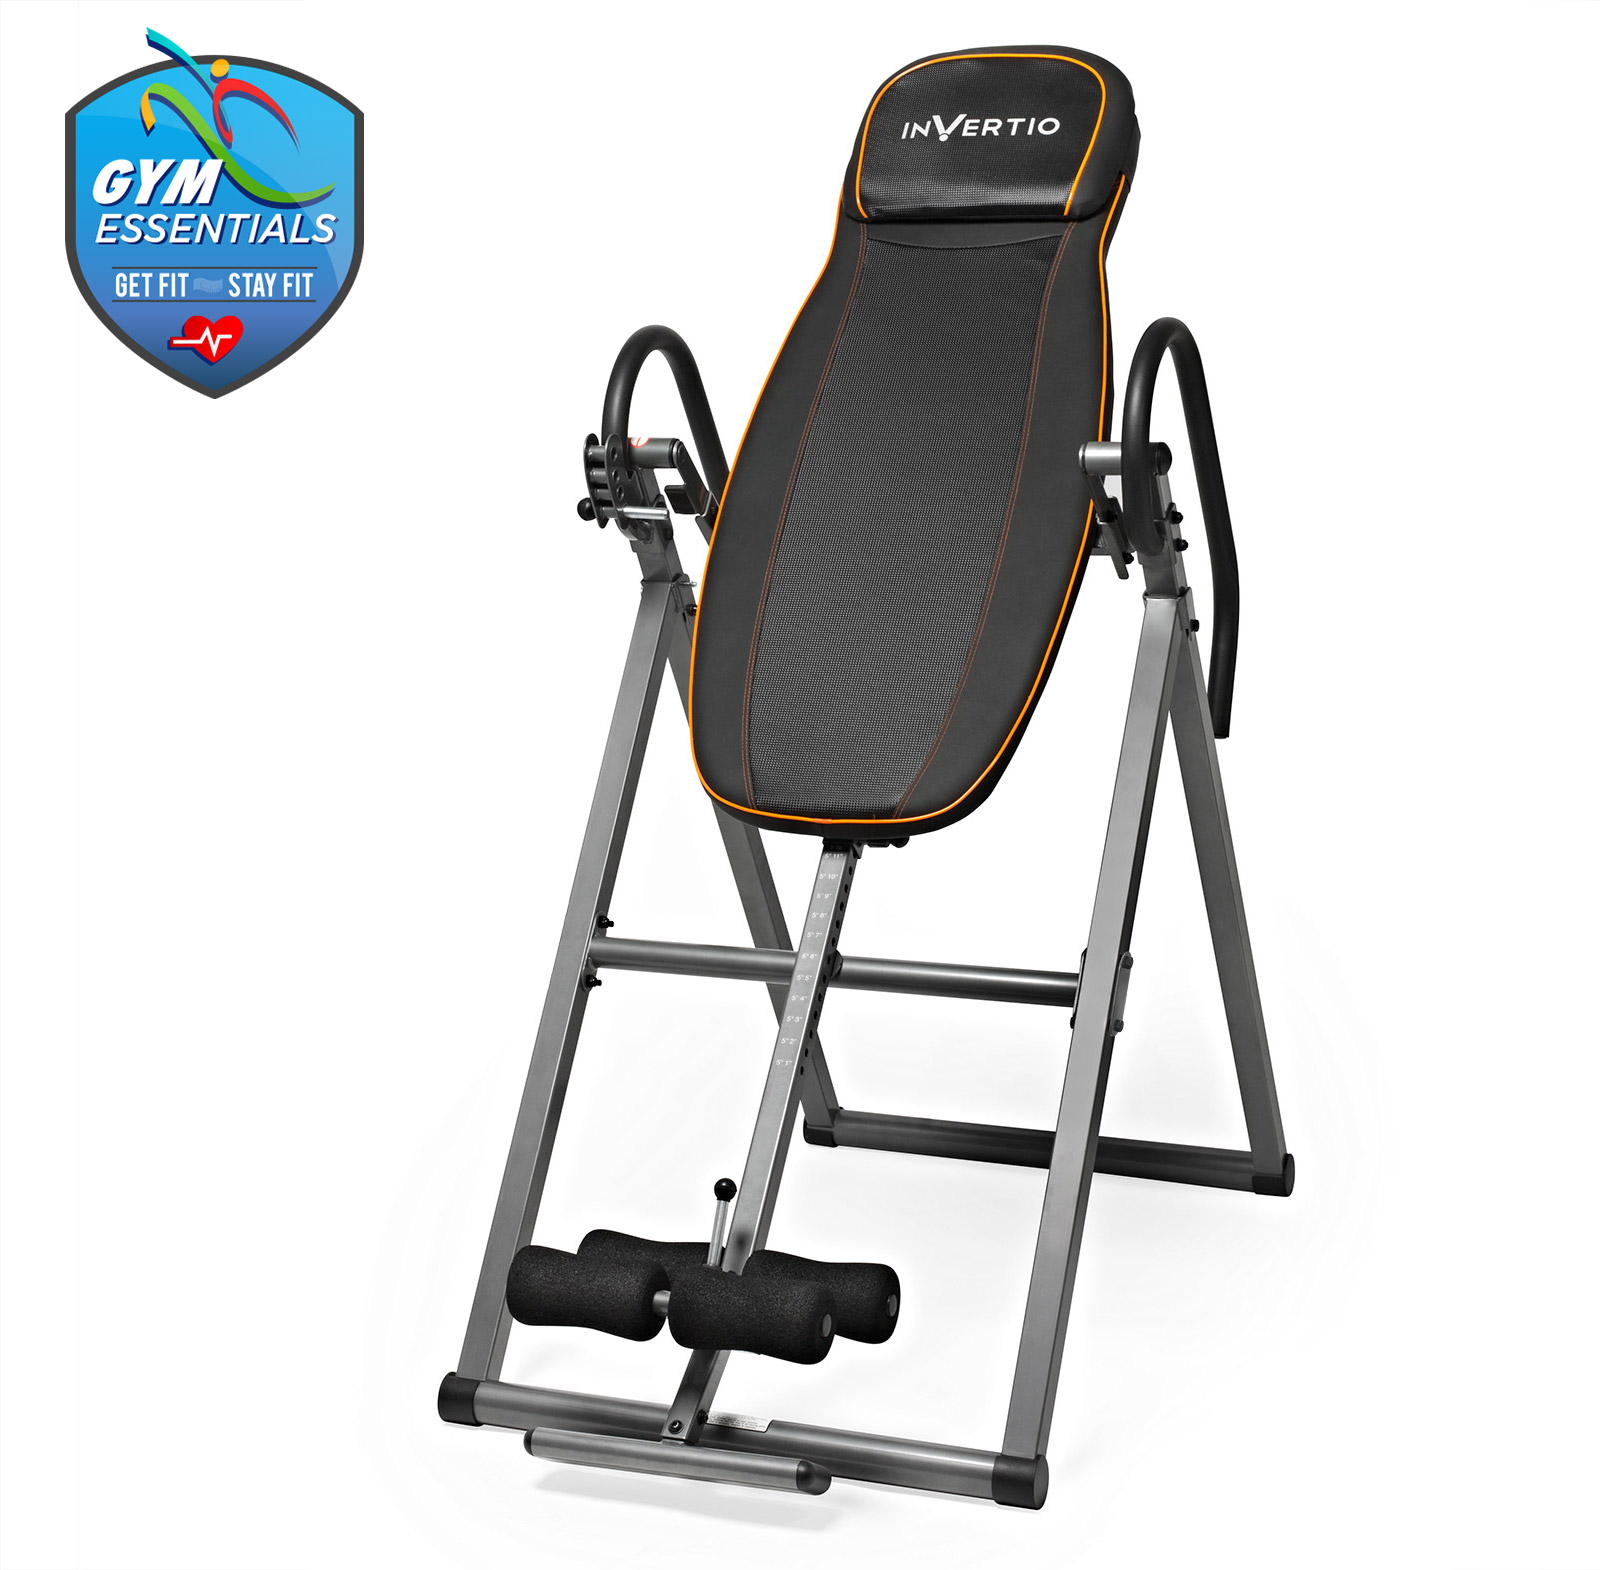 Folding inversion table gravity adjustable back fitness for 1201 back therapy inversion table